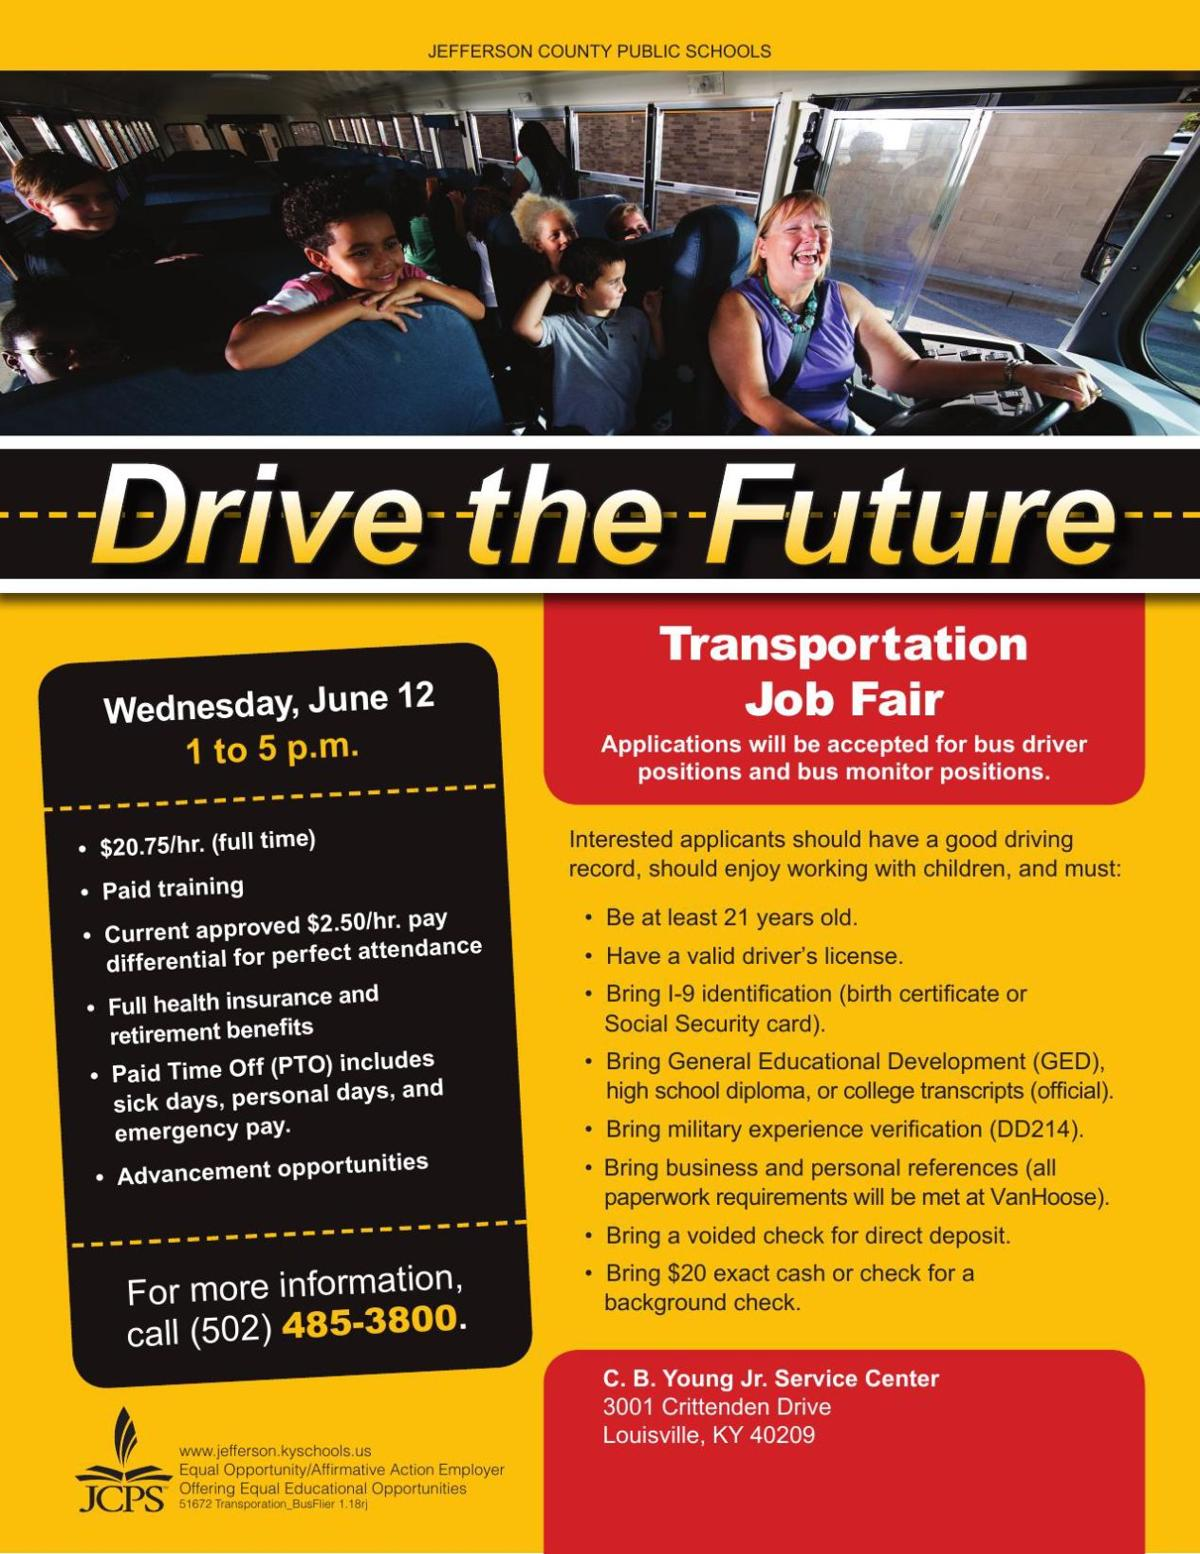 JCPS transportation bus flier